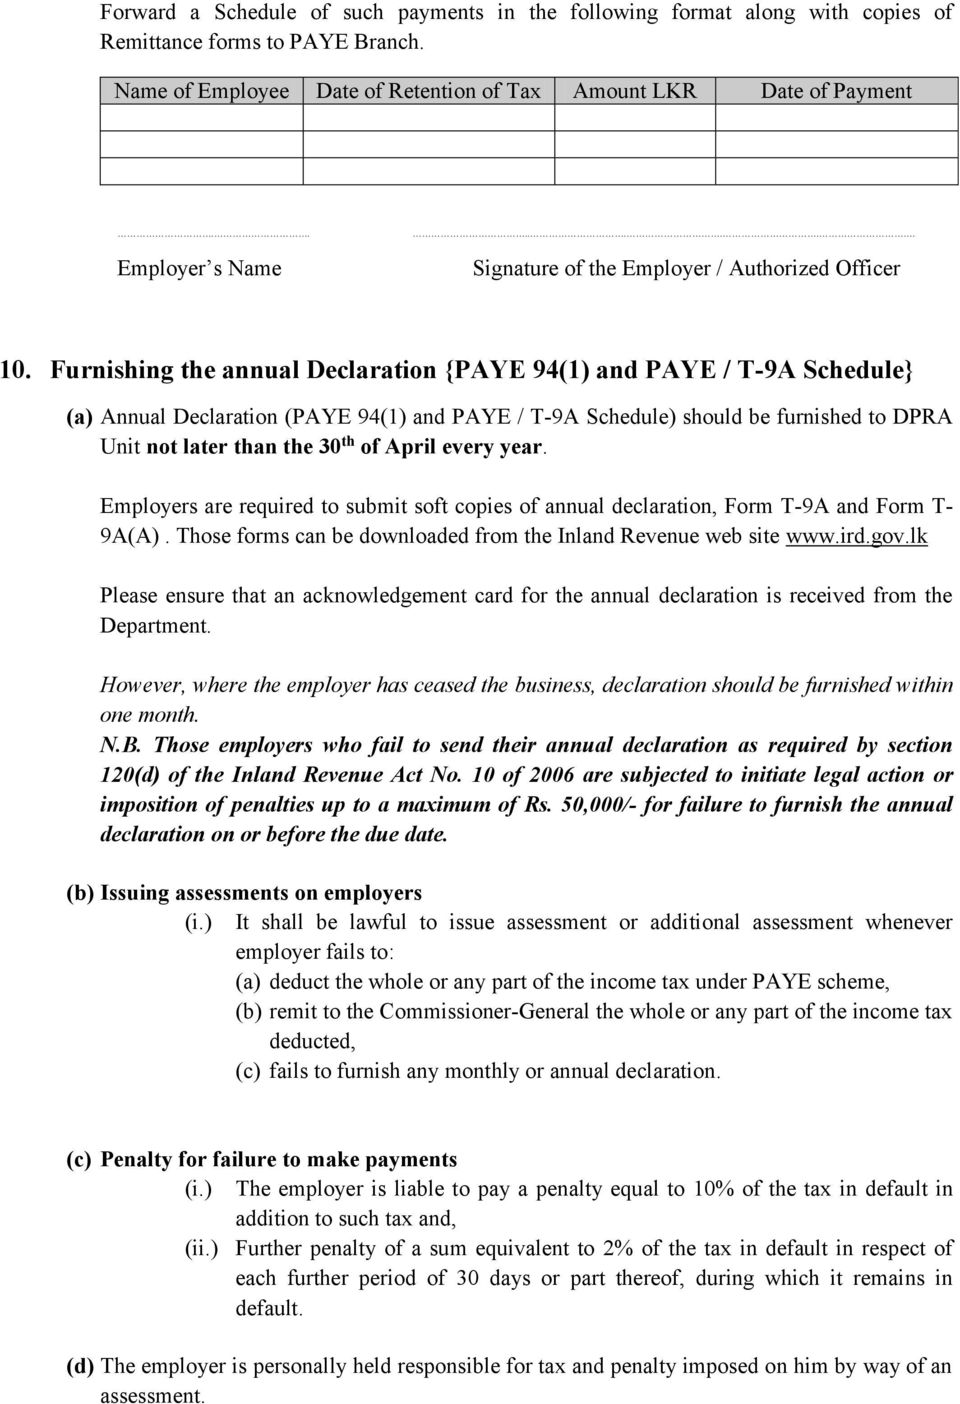 Furnishing the annual Declaration {PAYE 94(1) and PAYE / T-9A Schedule} (a) Annual Declaration (PAYE 94(1) and PAYE / T-9A Schedule) should be furnished to DPRA Unit not later than the 30 th of April